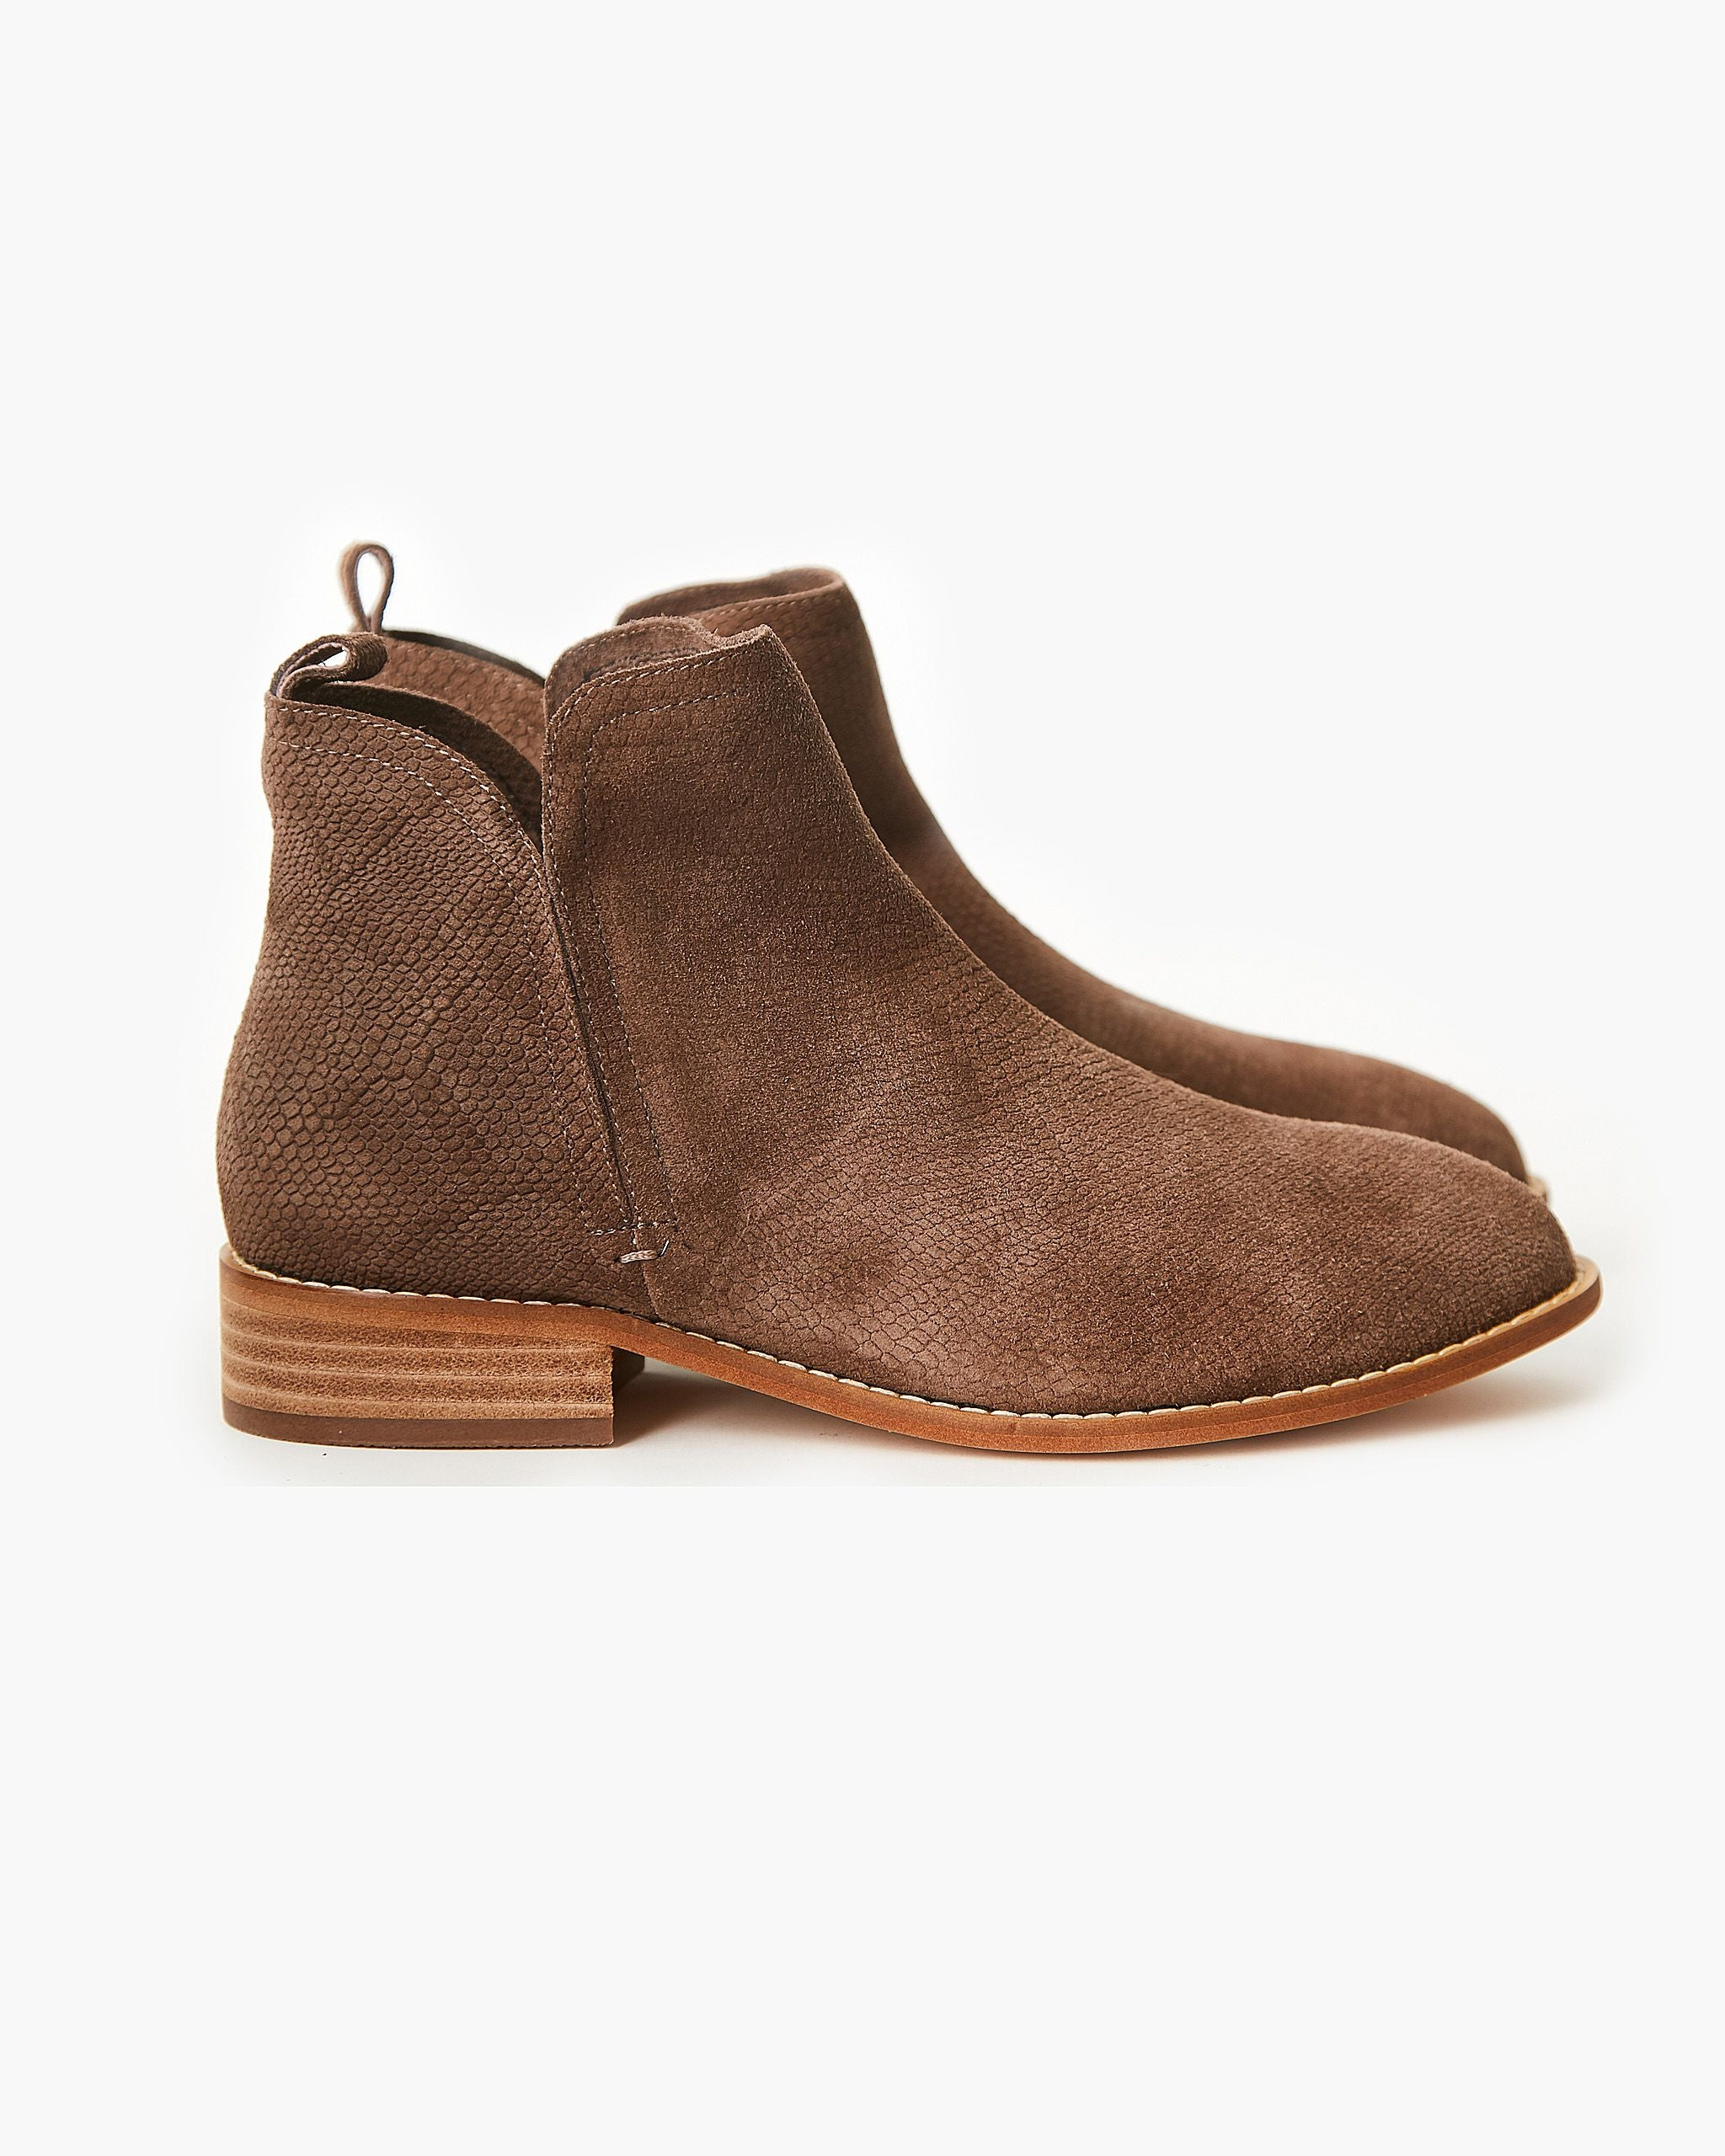 Walnut Douglas Leather Boot - Taupe Snake